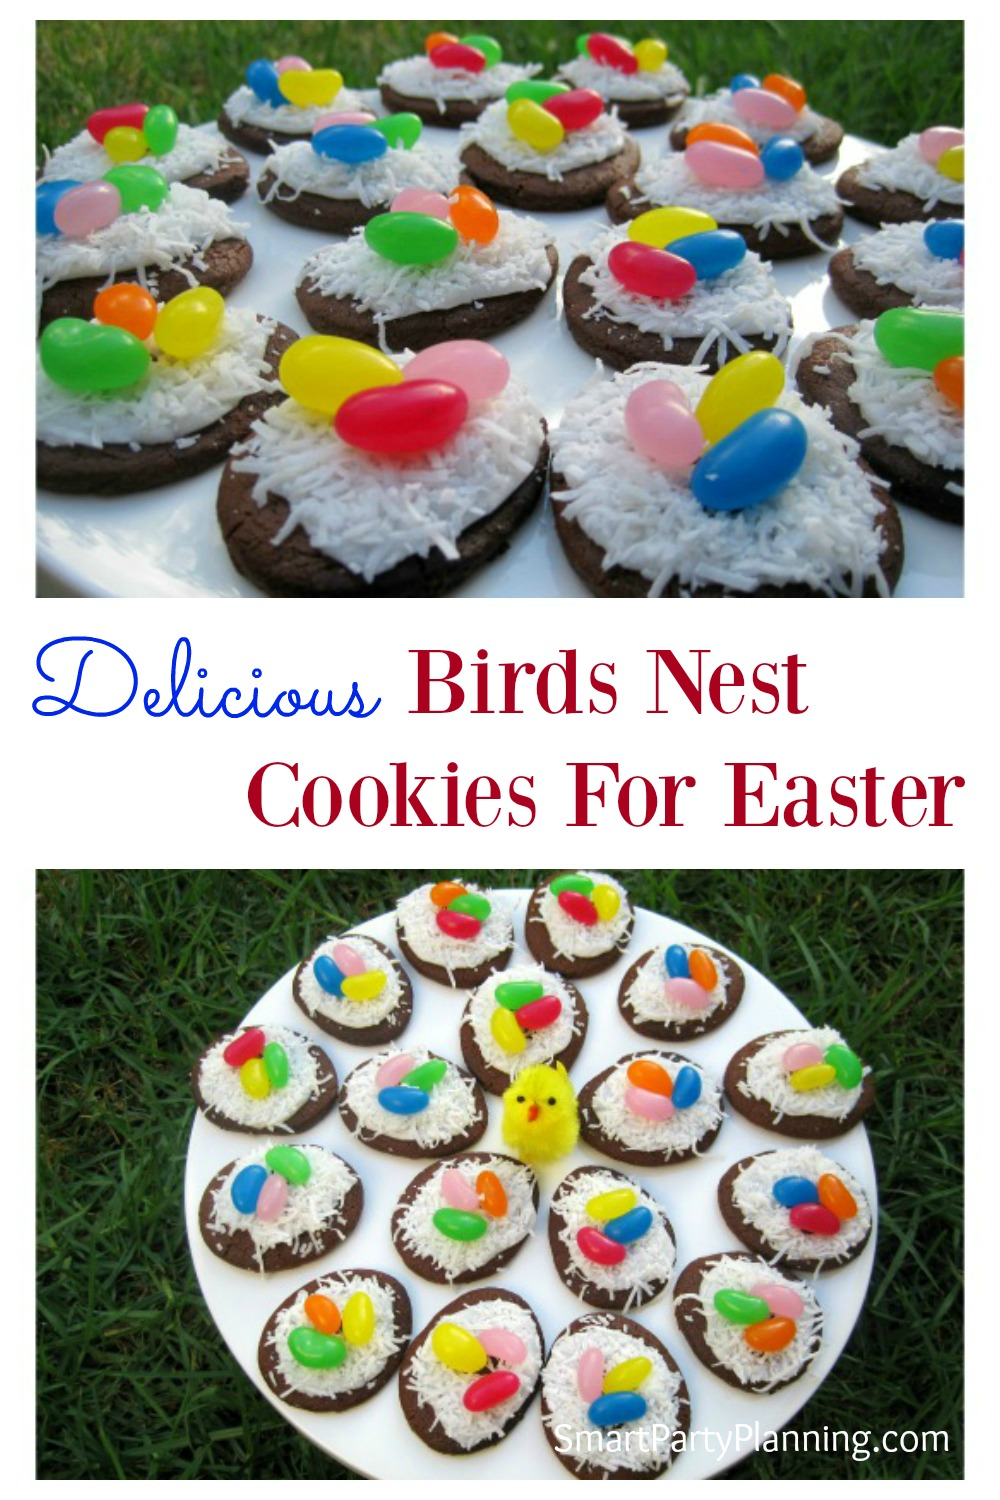 Learn how to easily make birds nest cookies that the kids are going to love. They are a fun treat for Easter and they are simple to prepare. Bake your own cookies, or use a packet. Either way they turn out great!